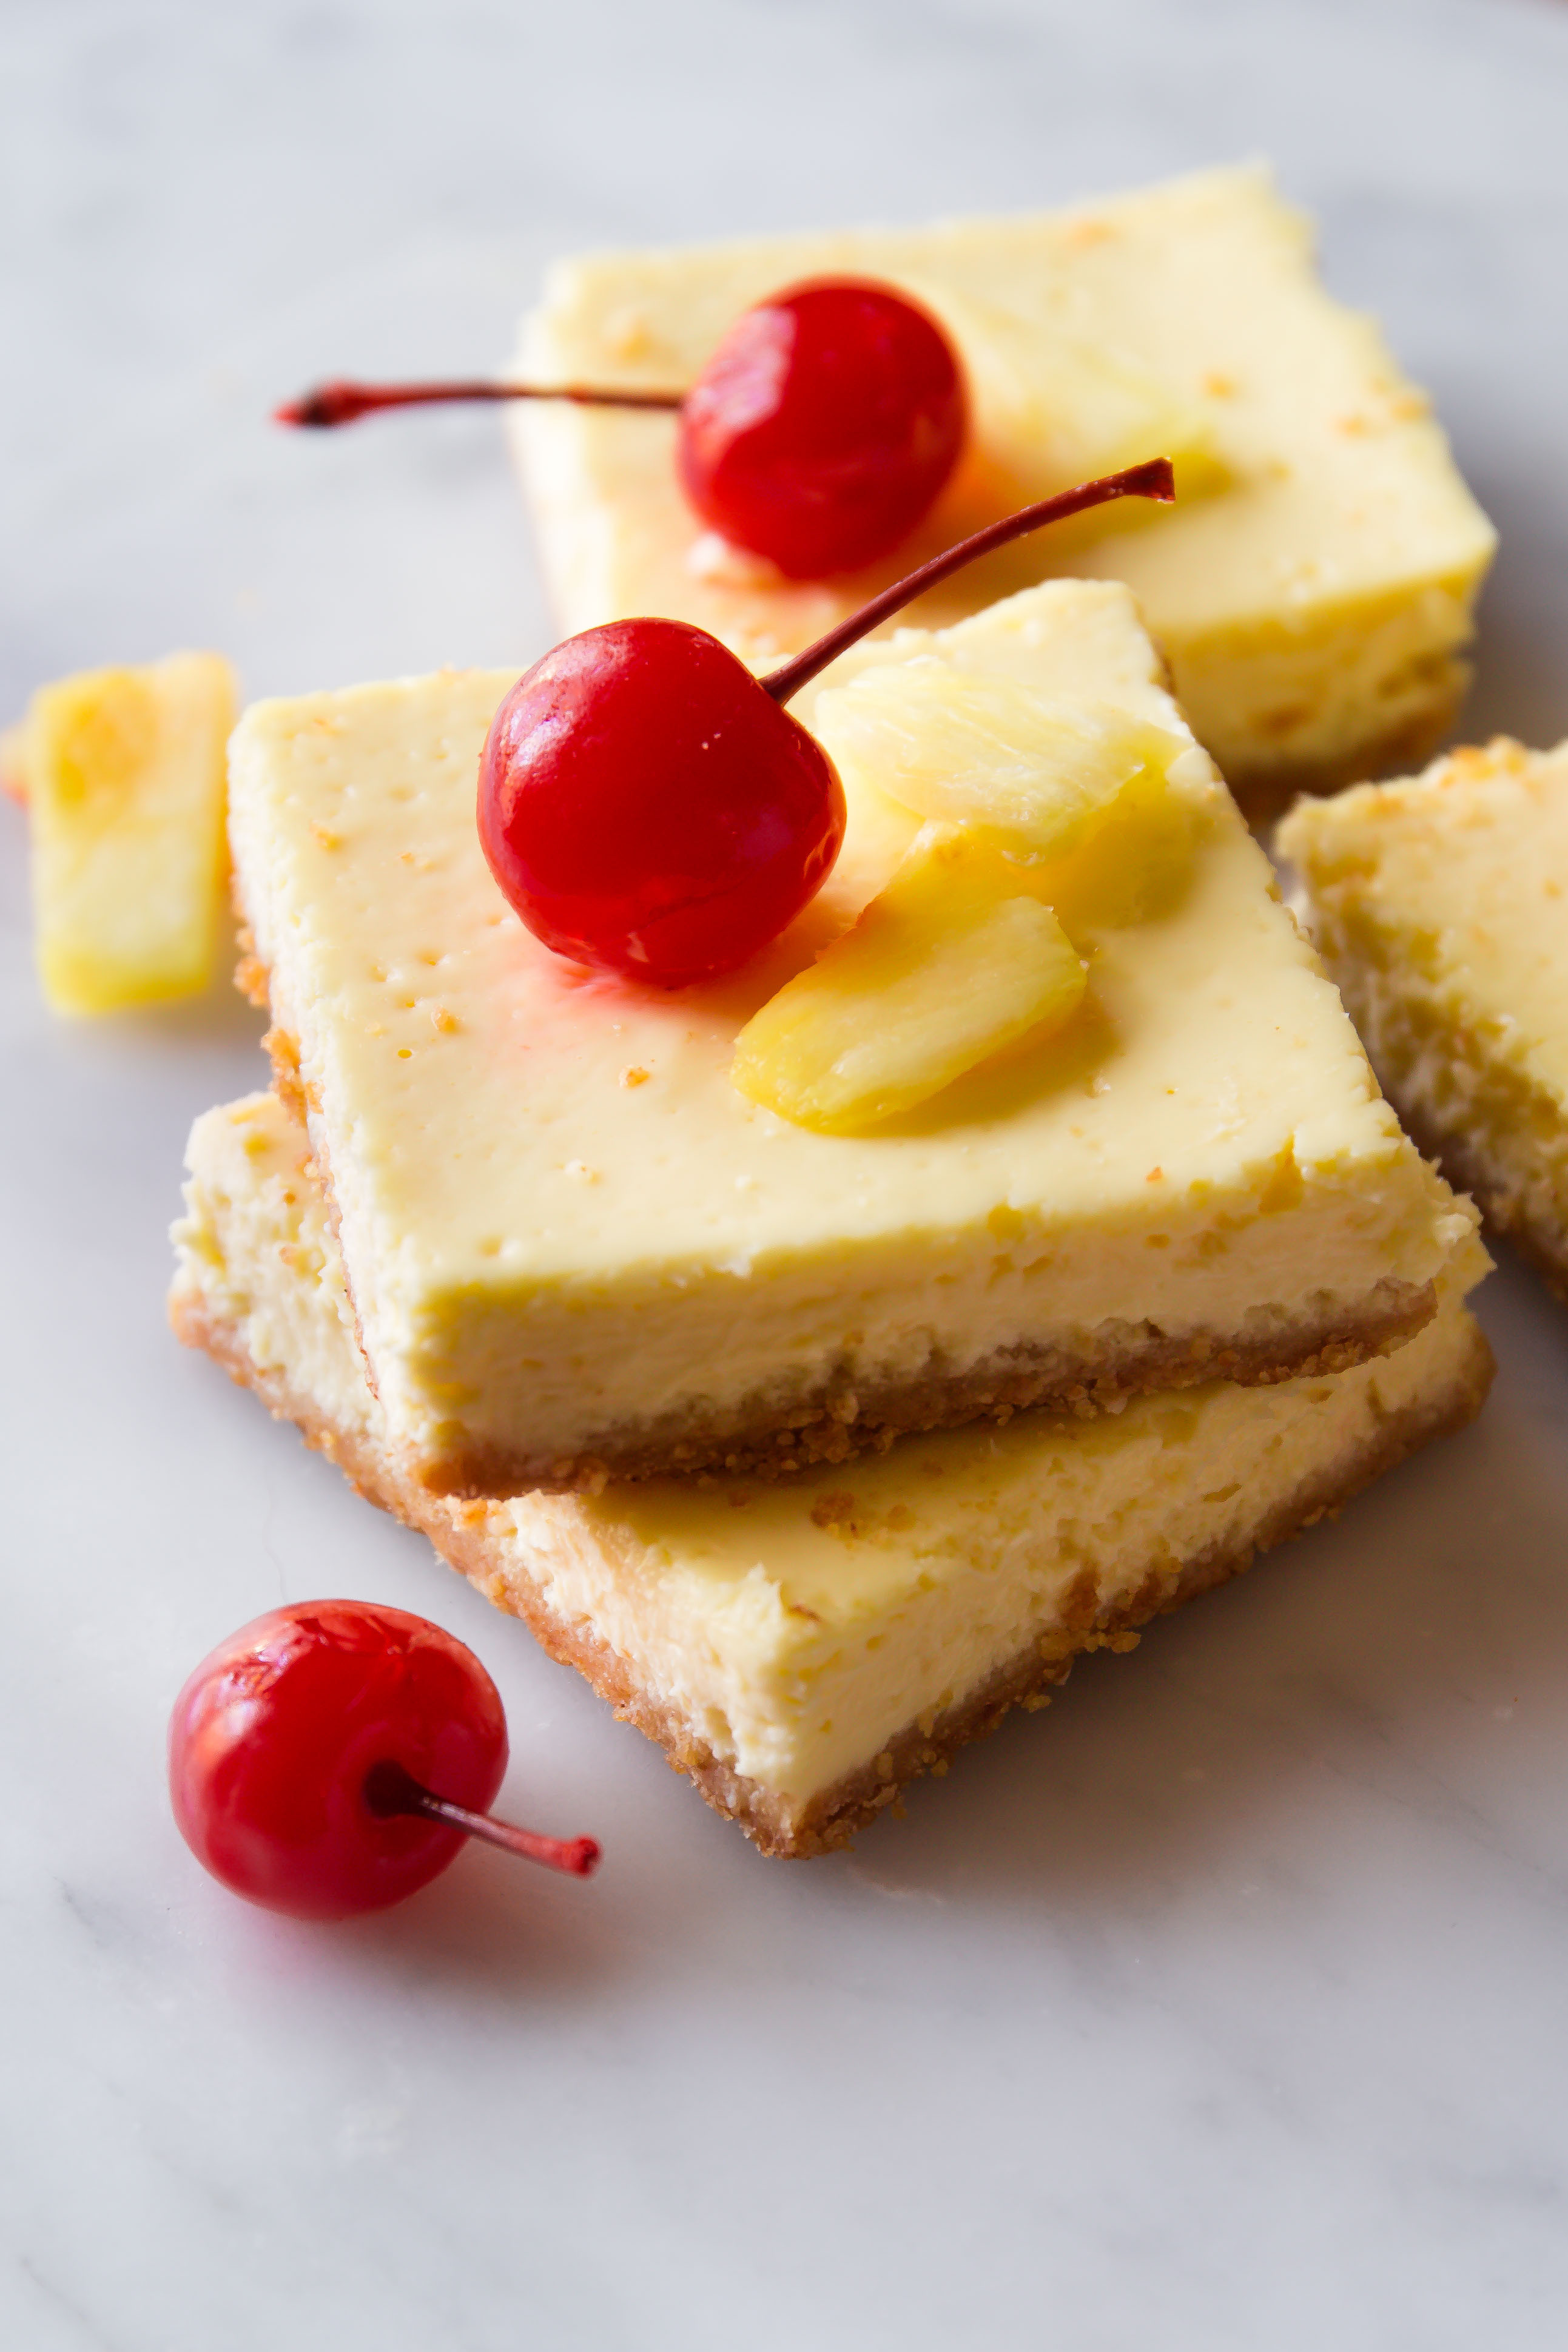 Healthy Pineapple Desserts  20 Best Pineapple Desserts Easy Recipes for Pineapple